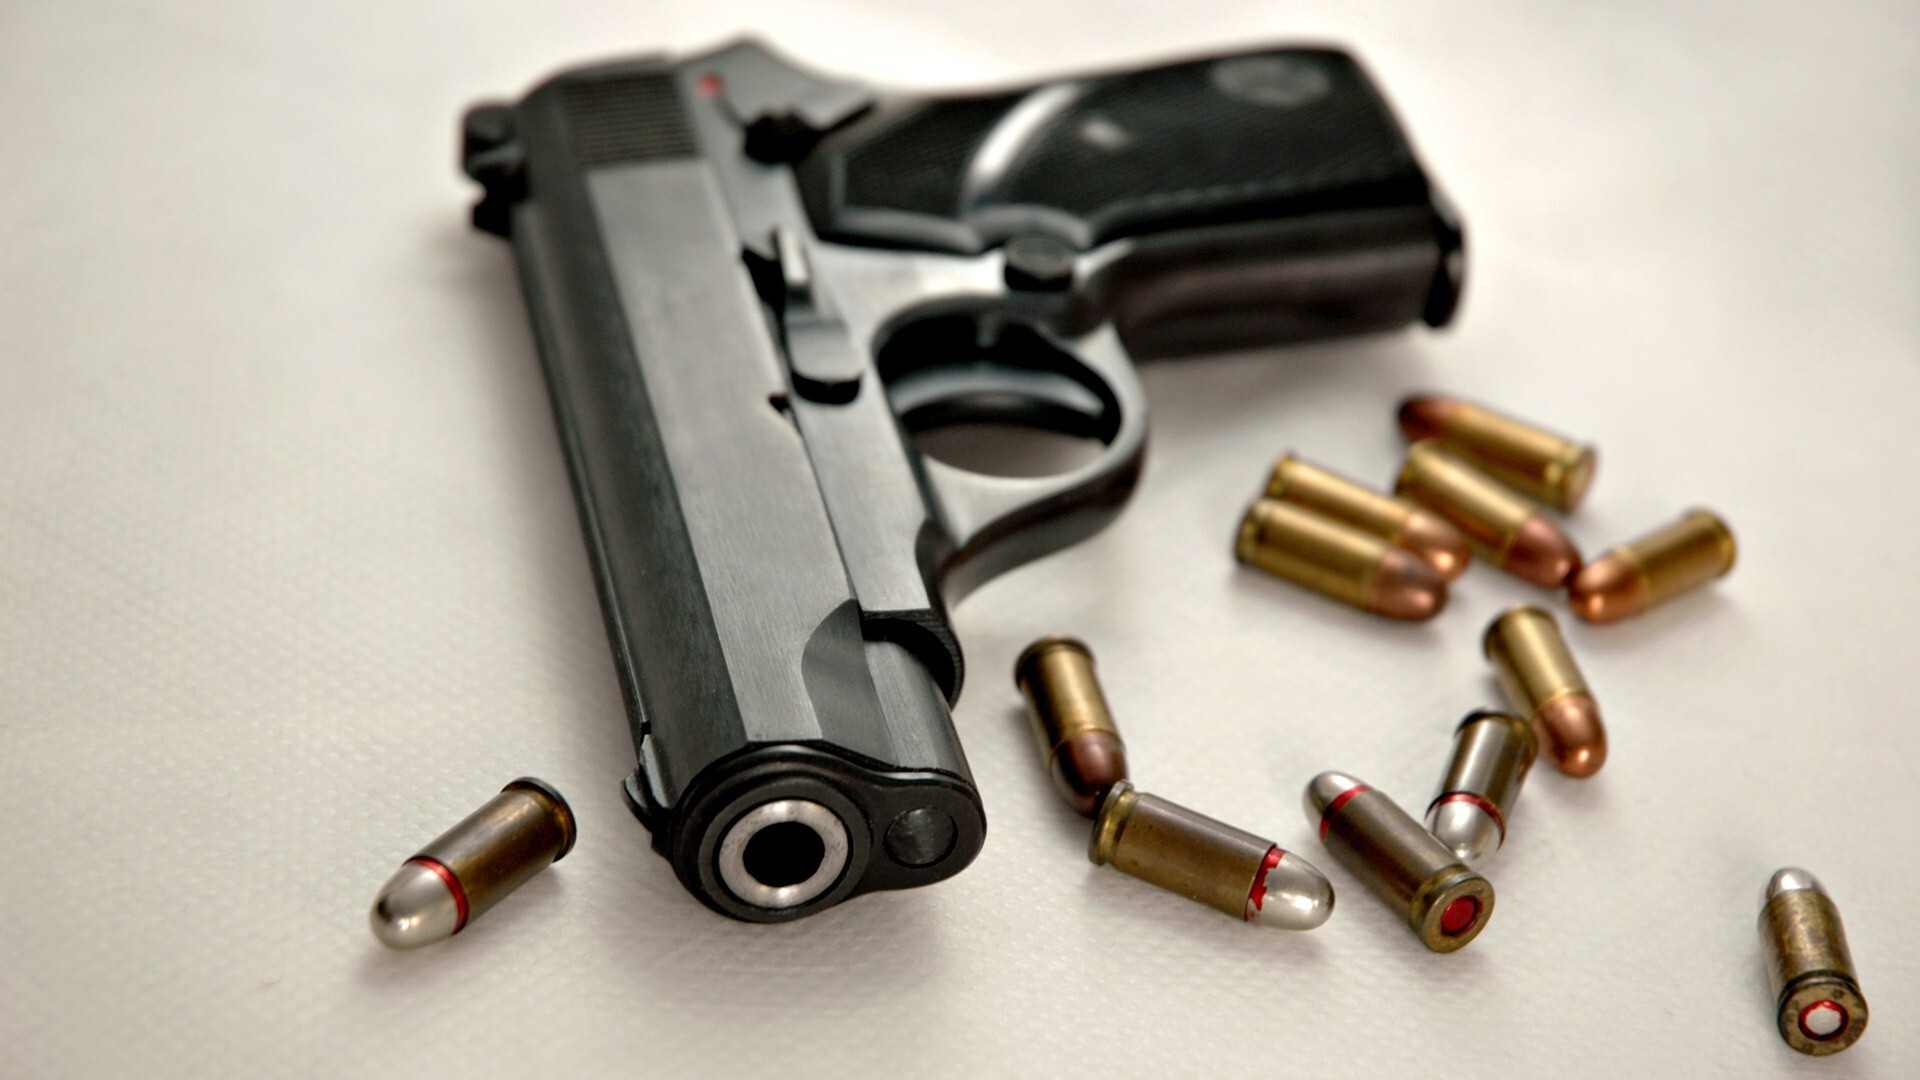 revolver hd wallpapers images pictures photos download